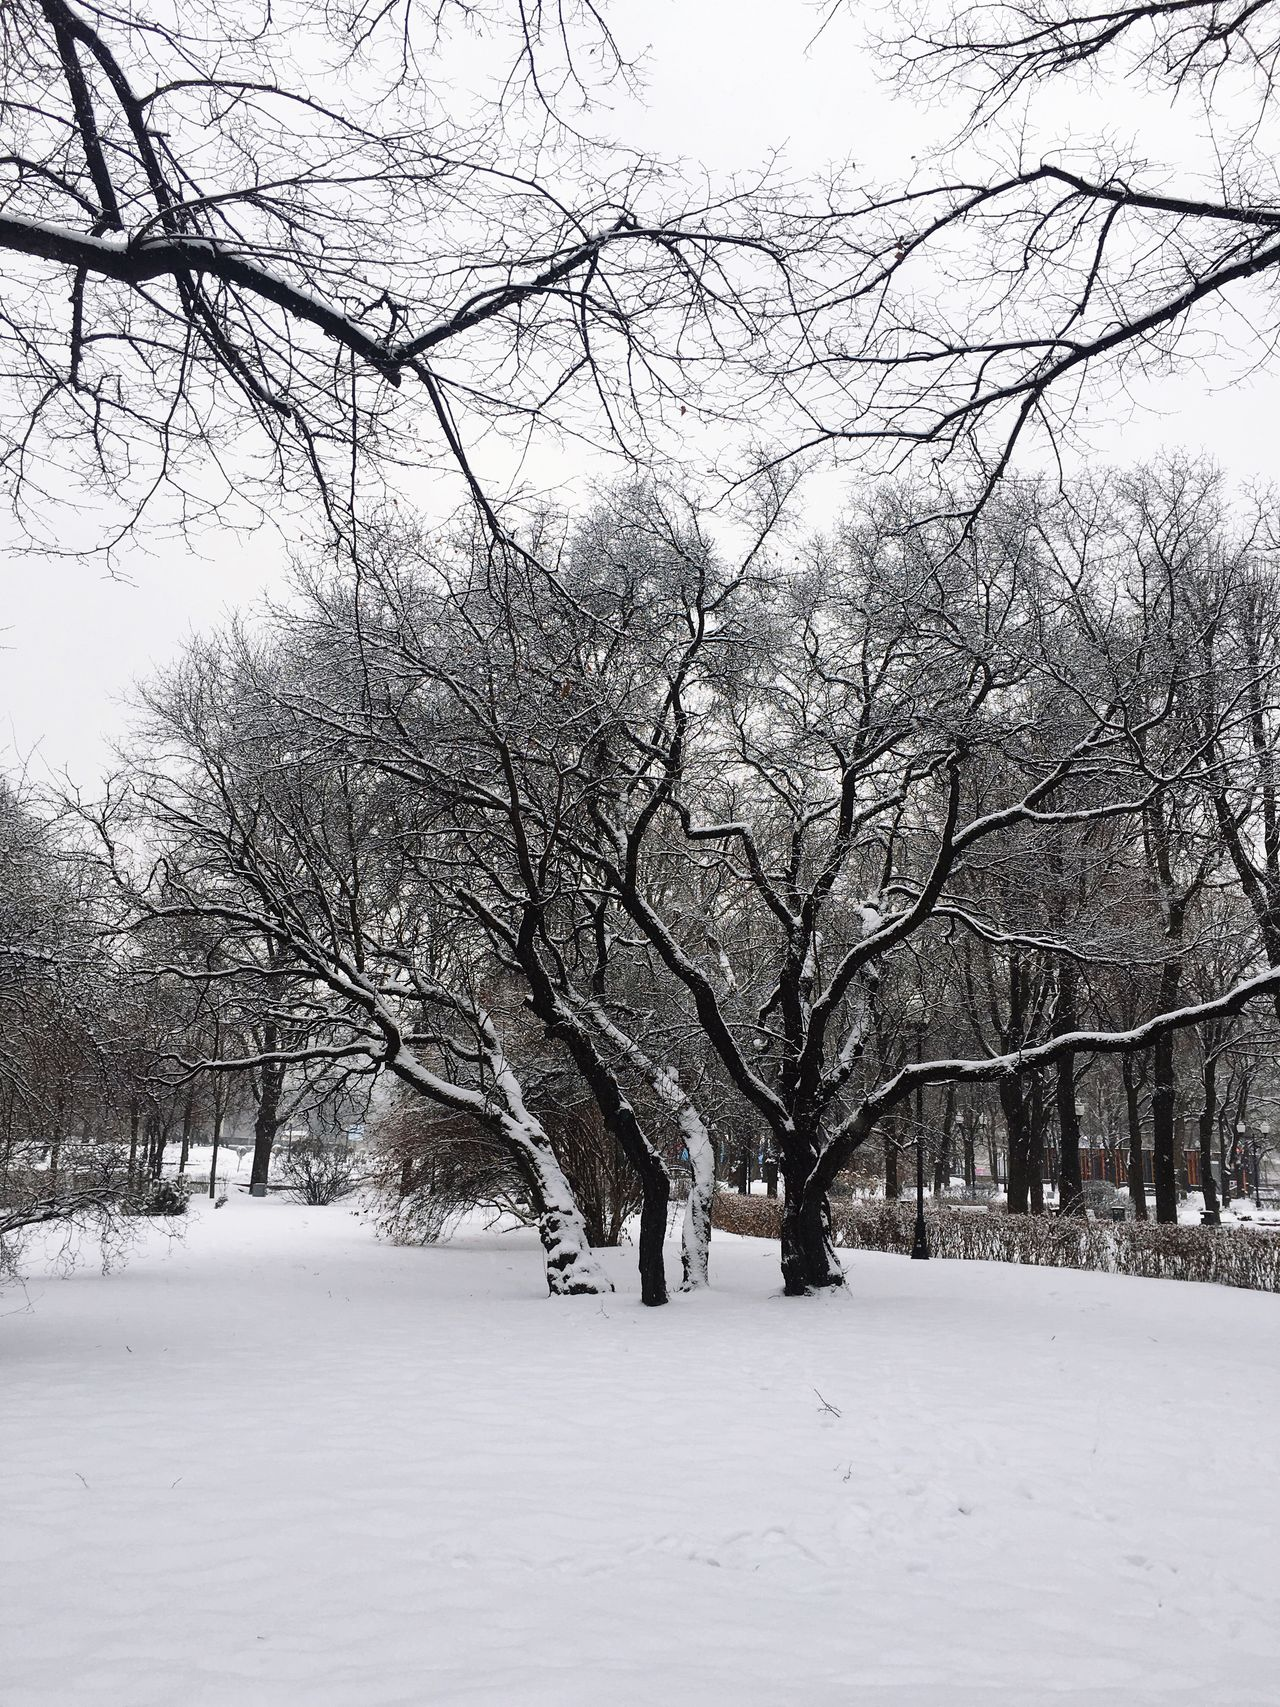 Cold Temperature Tree Snow Winter Bare Tree Weather Nature Branch Tranquility No People Outdoors Beauty In Nature Scenics Tranquil Scene Day Sky Snowing Moscow Russian Winter Gorky Park Weather